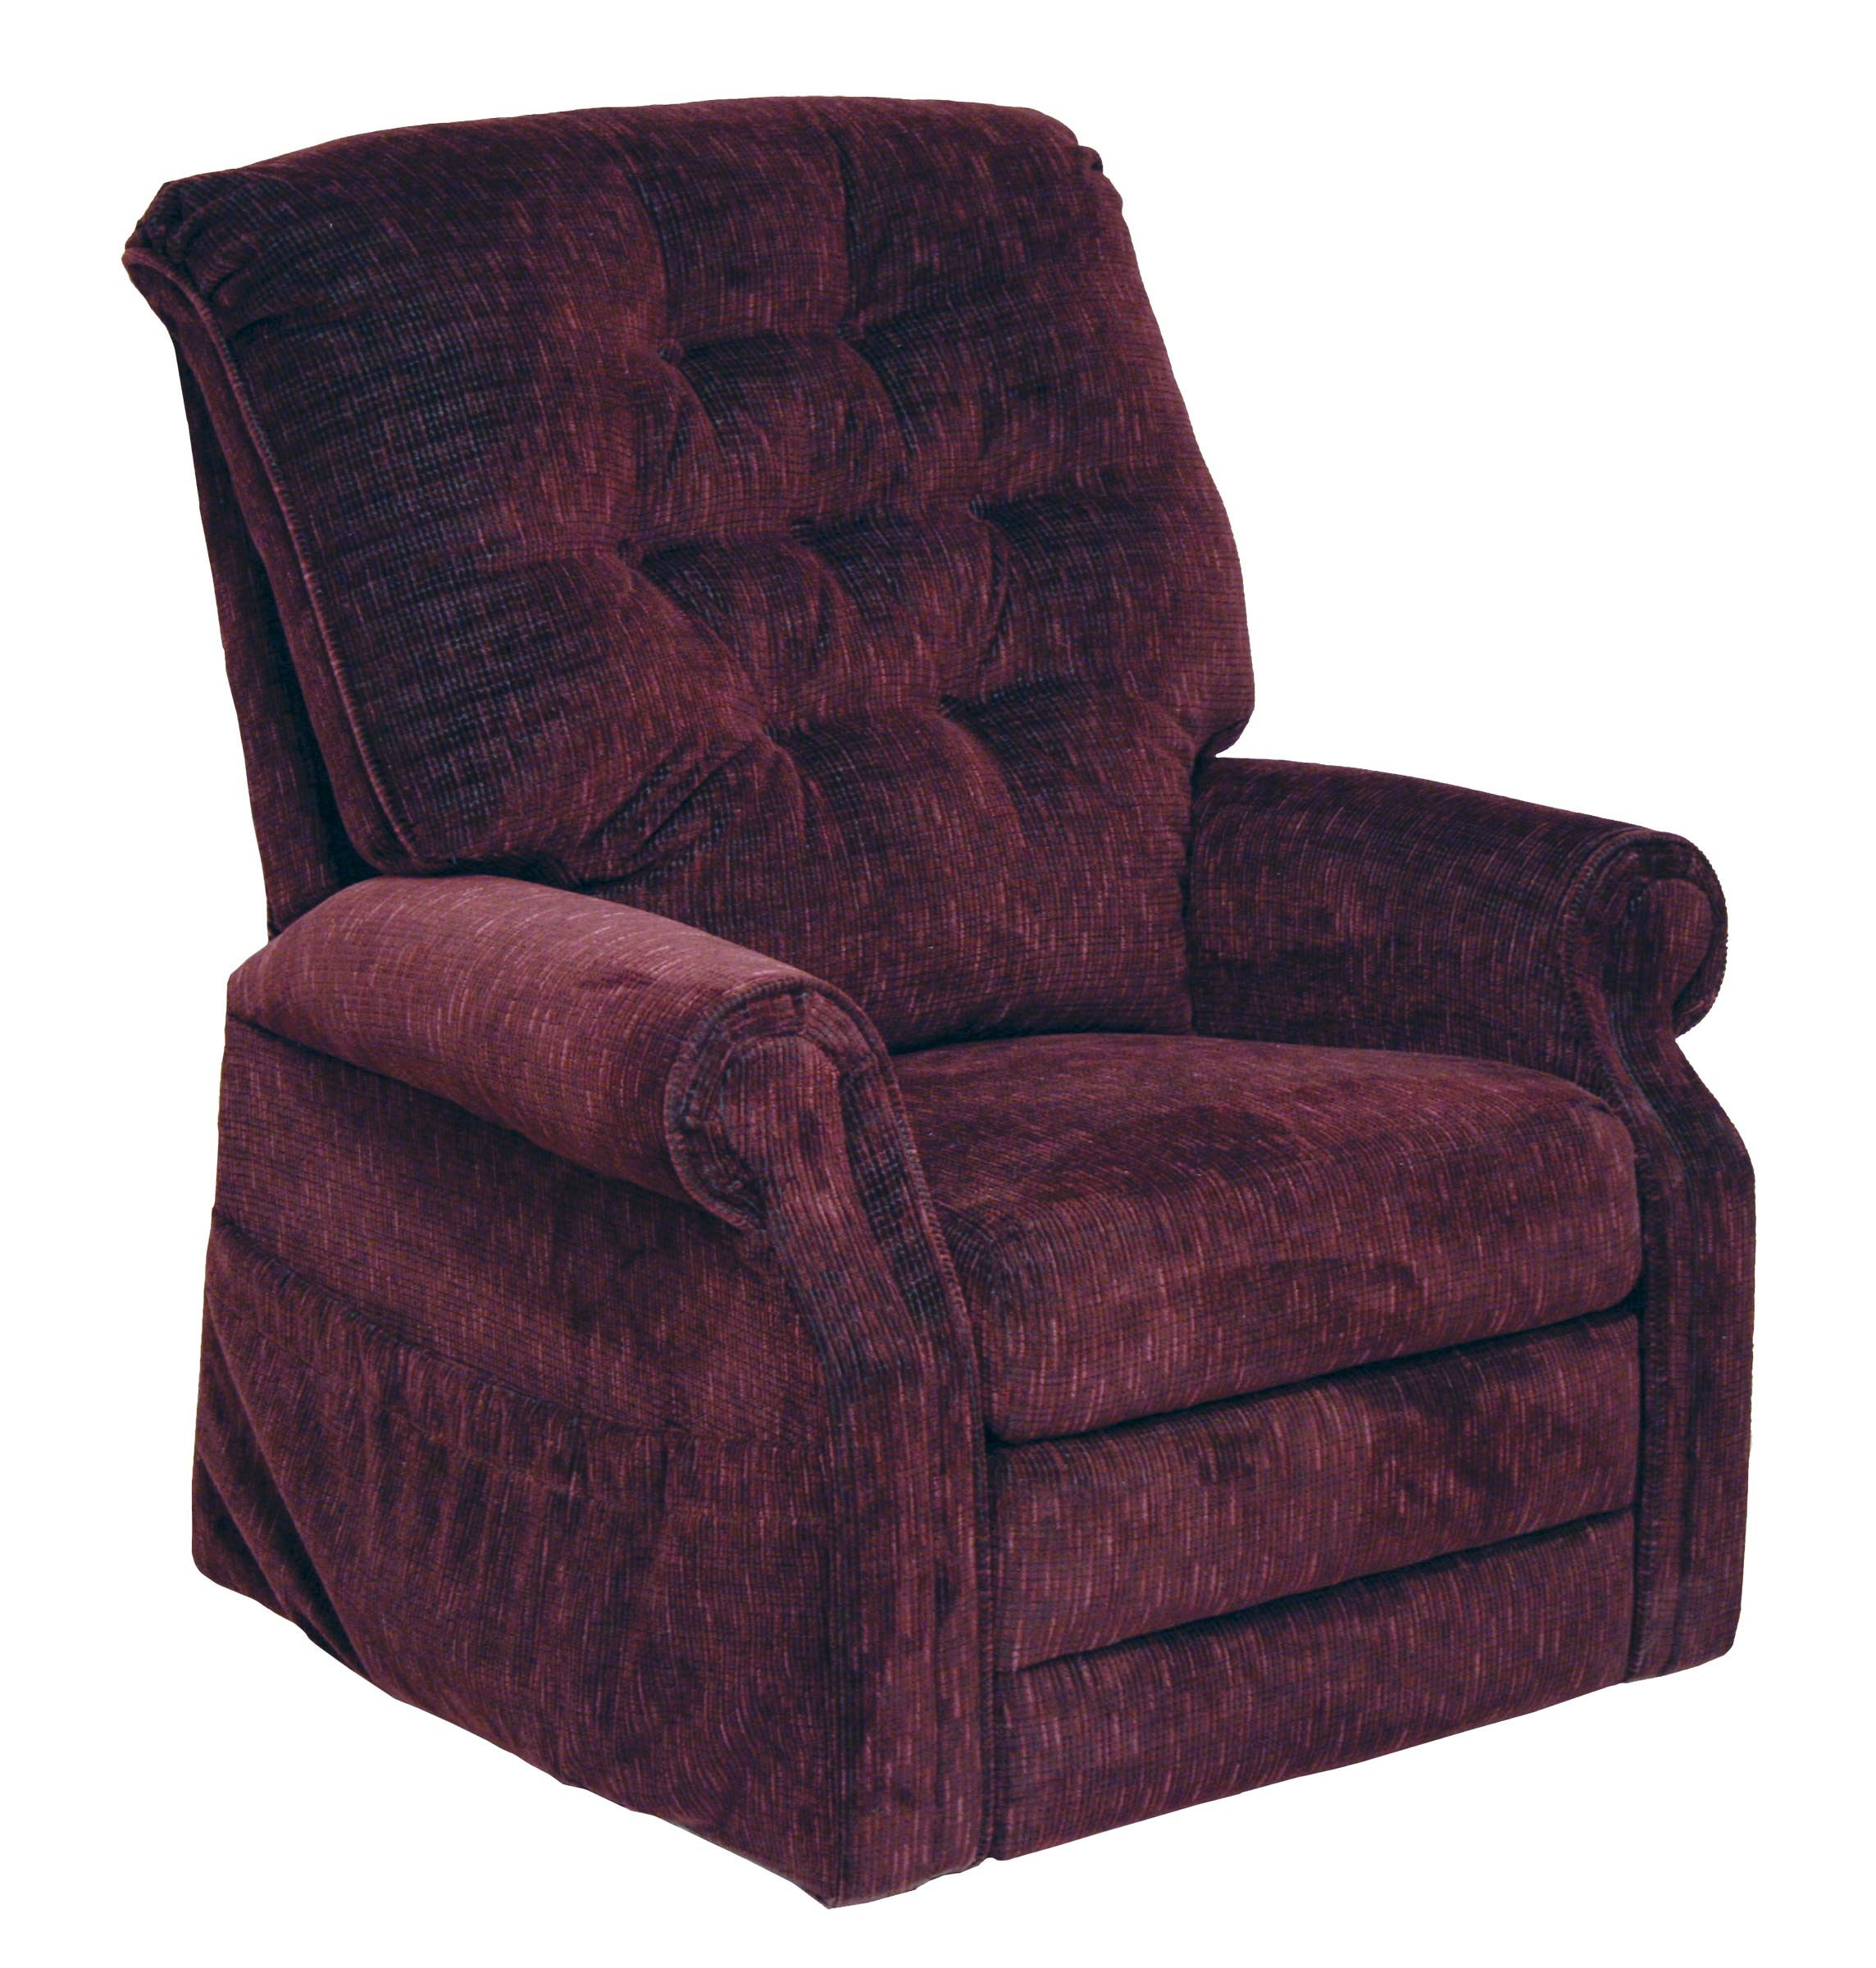 Patriot Pow'r Full Lay-Out Lift Chair Color: Vino